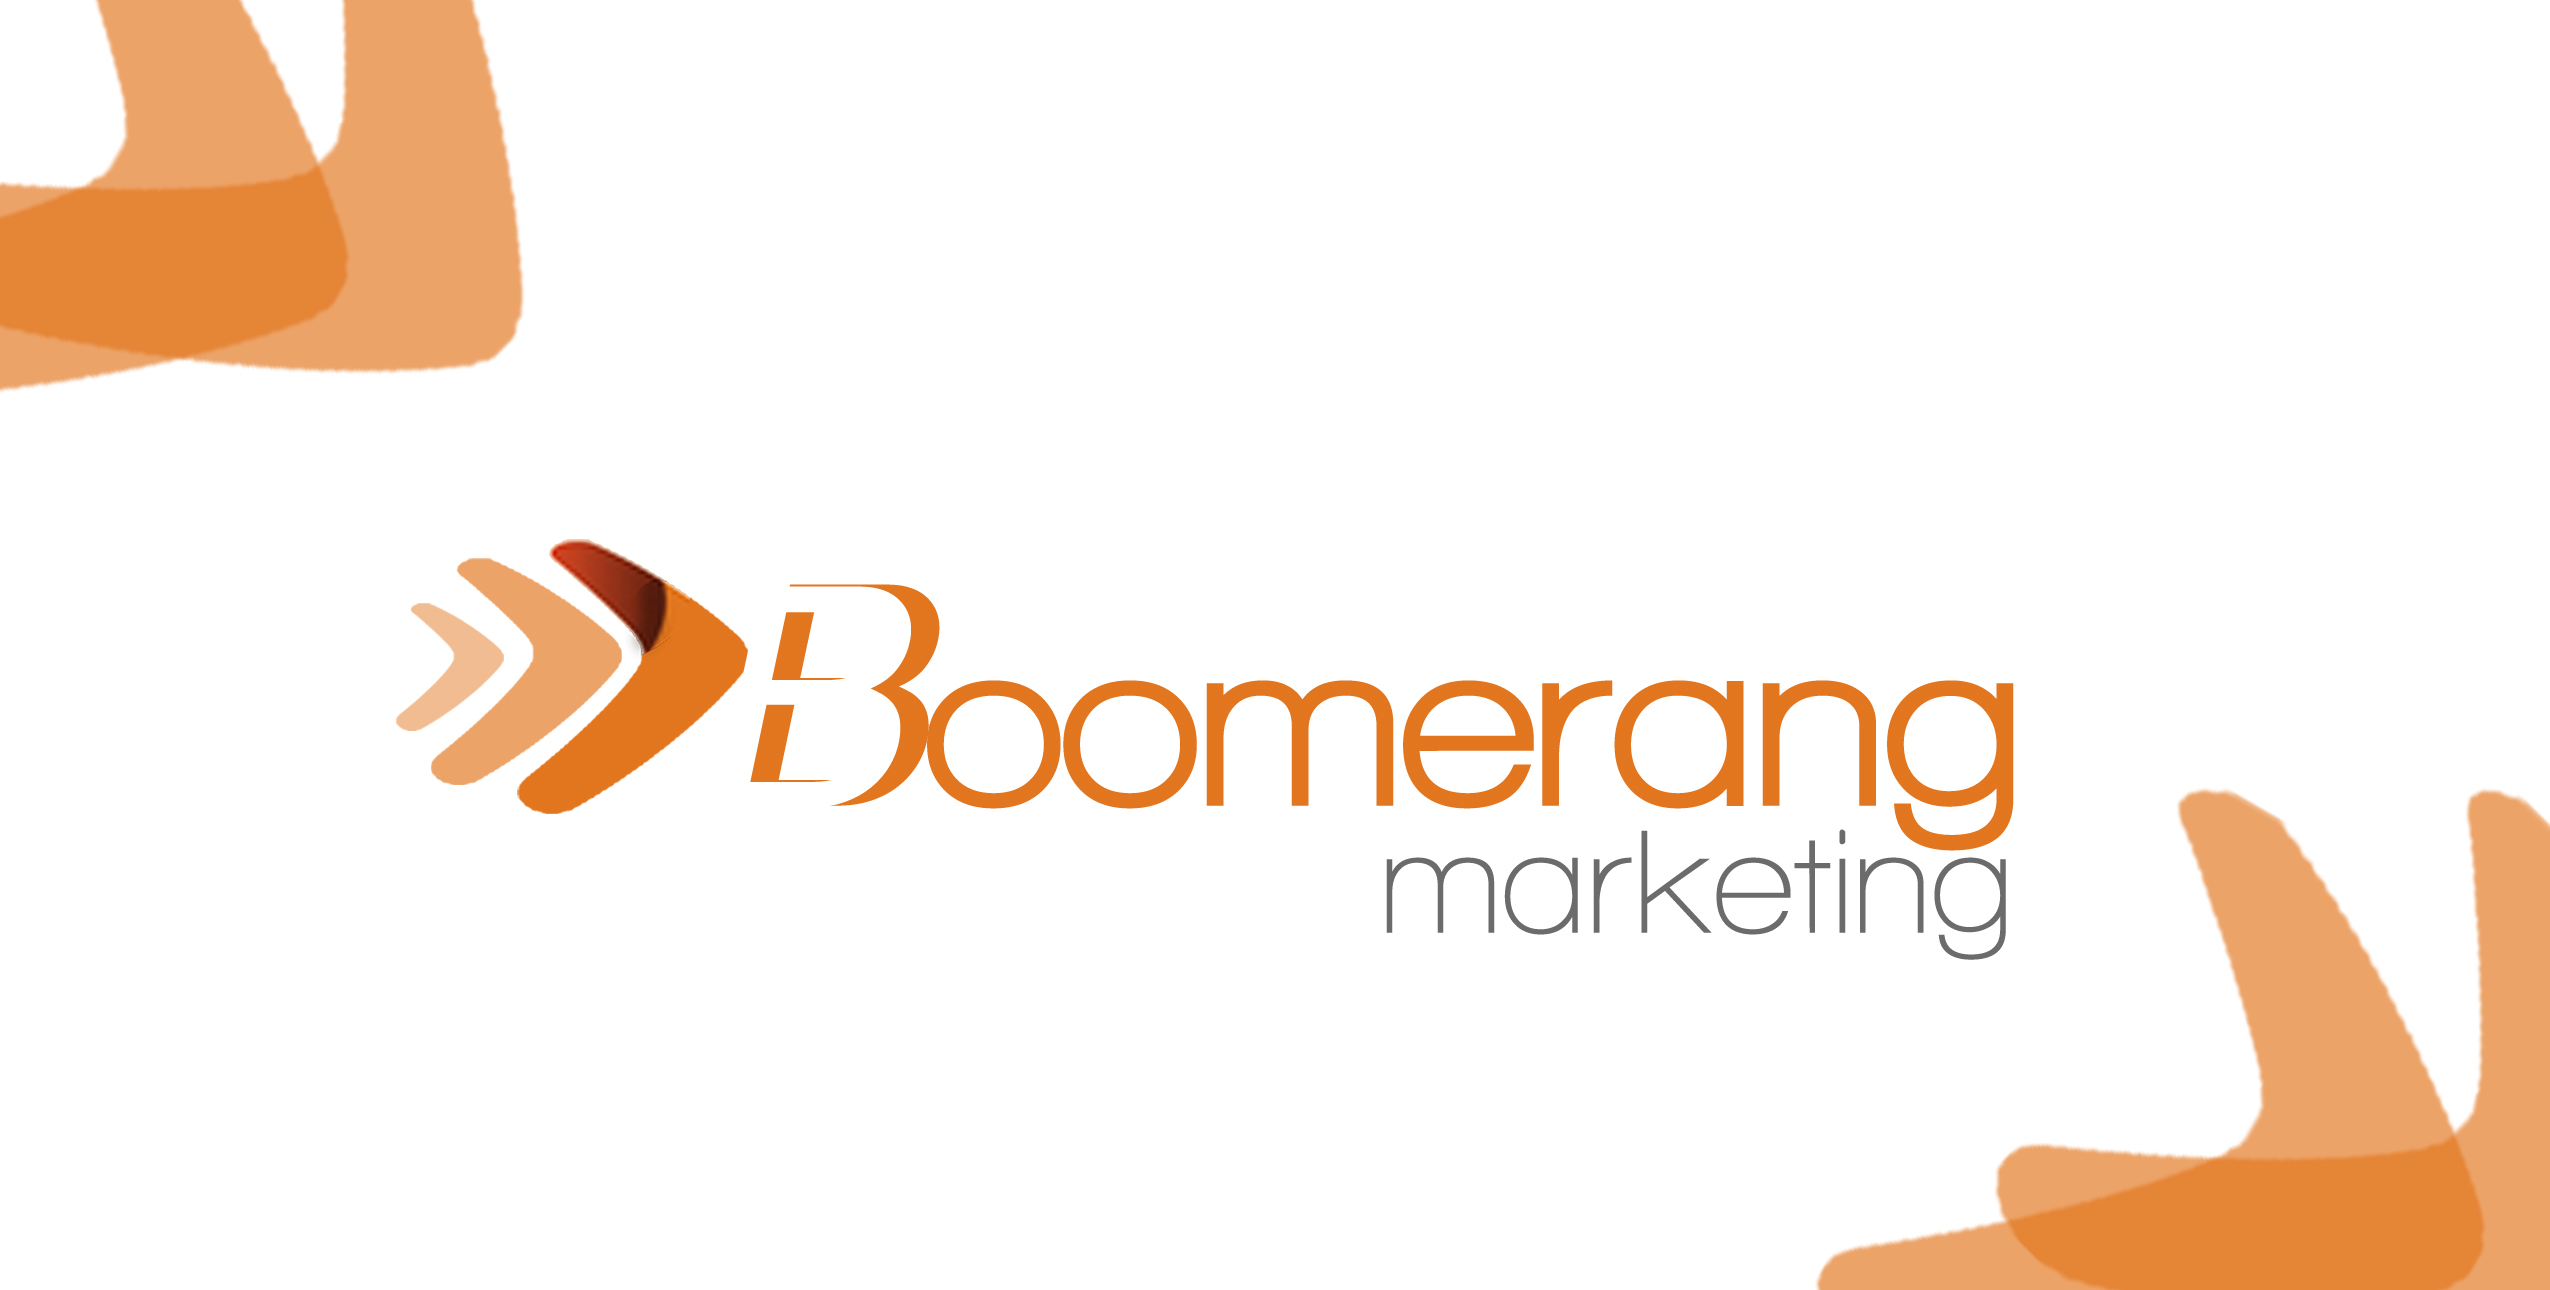 Logo Design by Lama Creative - Entry No. 30 in the Logo Design Contest Unique Logo Design Wanted for Boomerang Marketing.